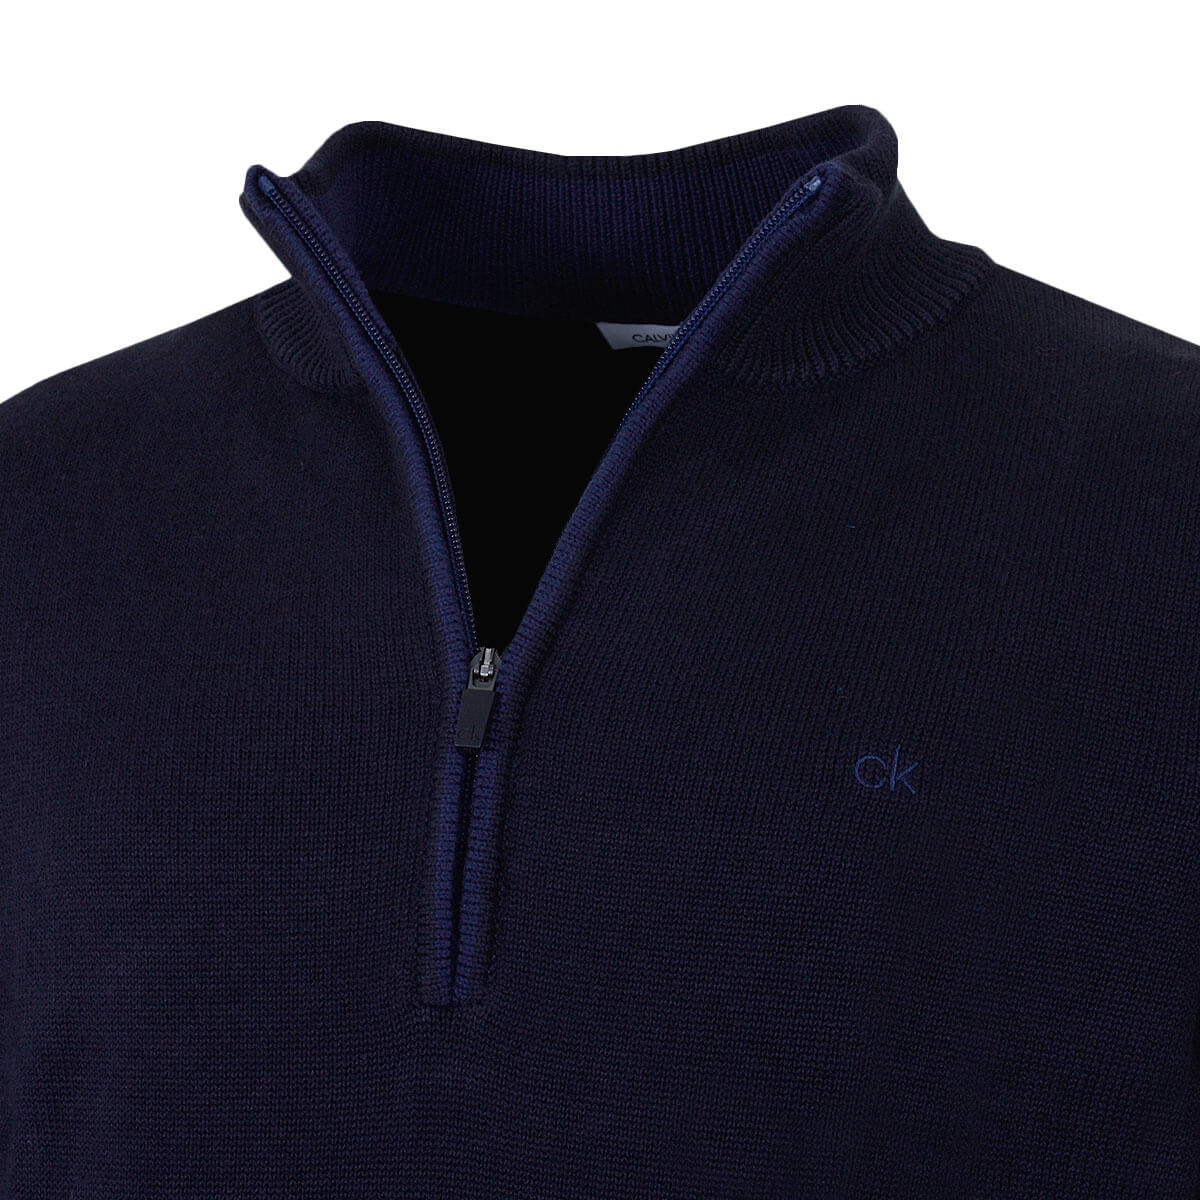 Calvin-Klein-Golf-Mens-2019-Chunky-Cotton-1-2-Zip-Golf-Top-Sweater-28-OFF-RRP thumbnail 38